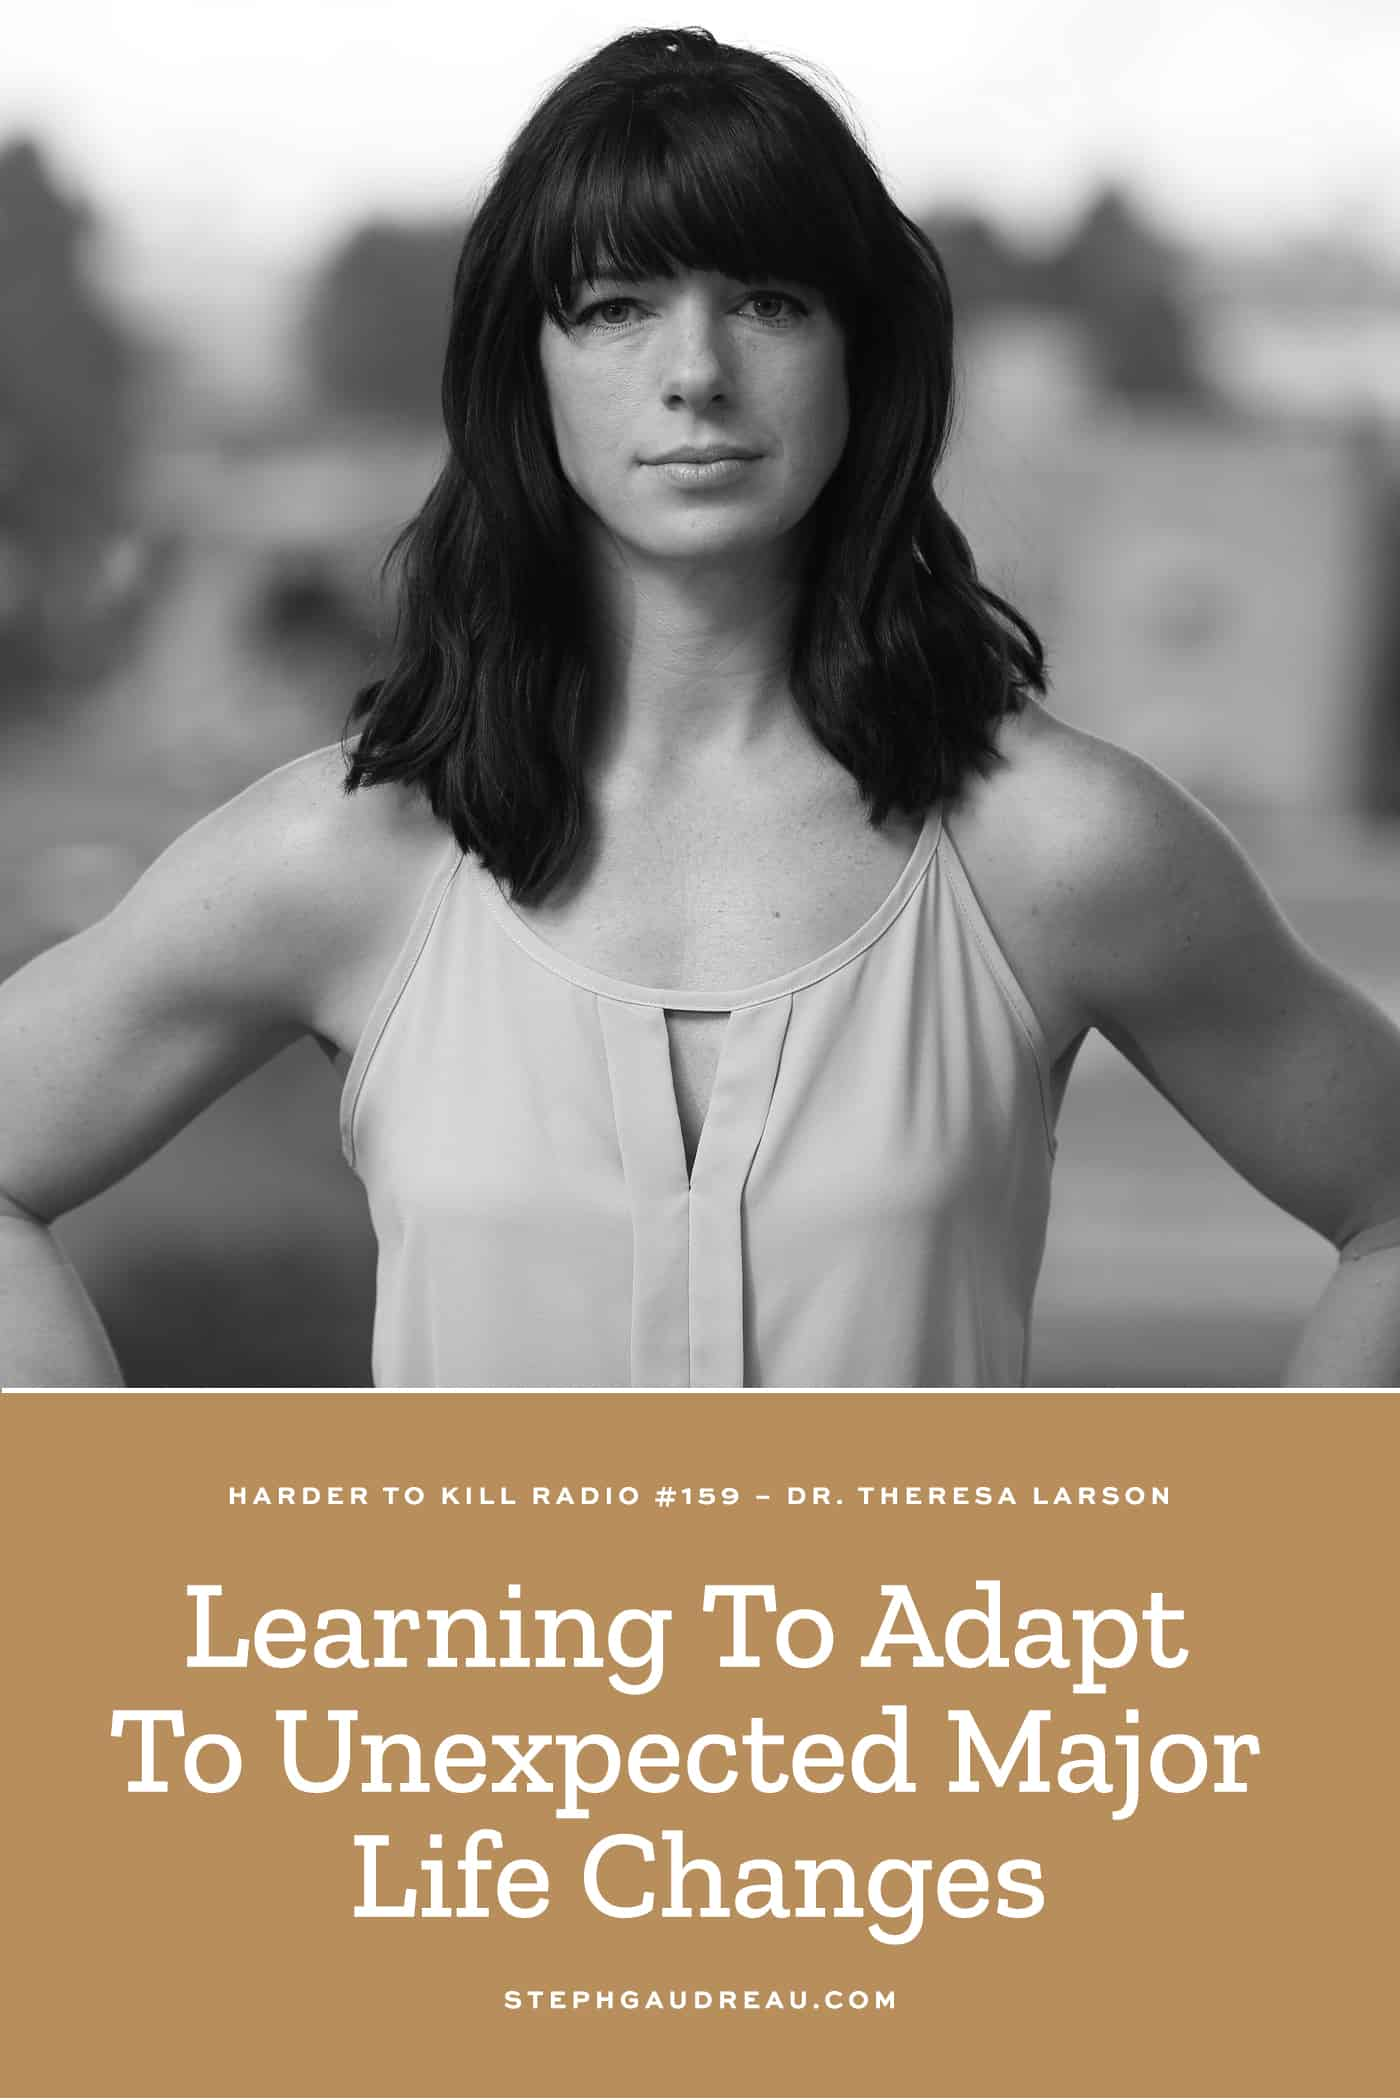 Harder To Kill Radio 159 | Learning To Adapt To Unexpected Major Life Changes w/ Dr. Theresa Larson